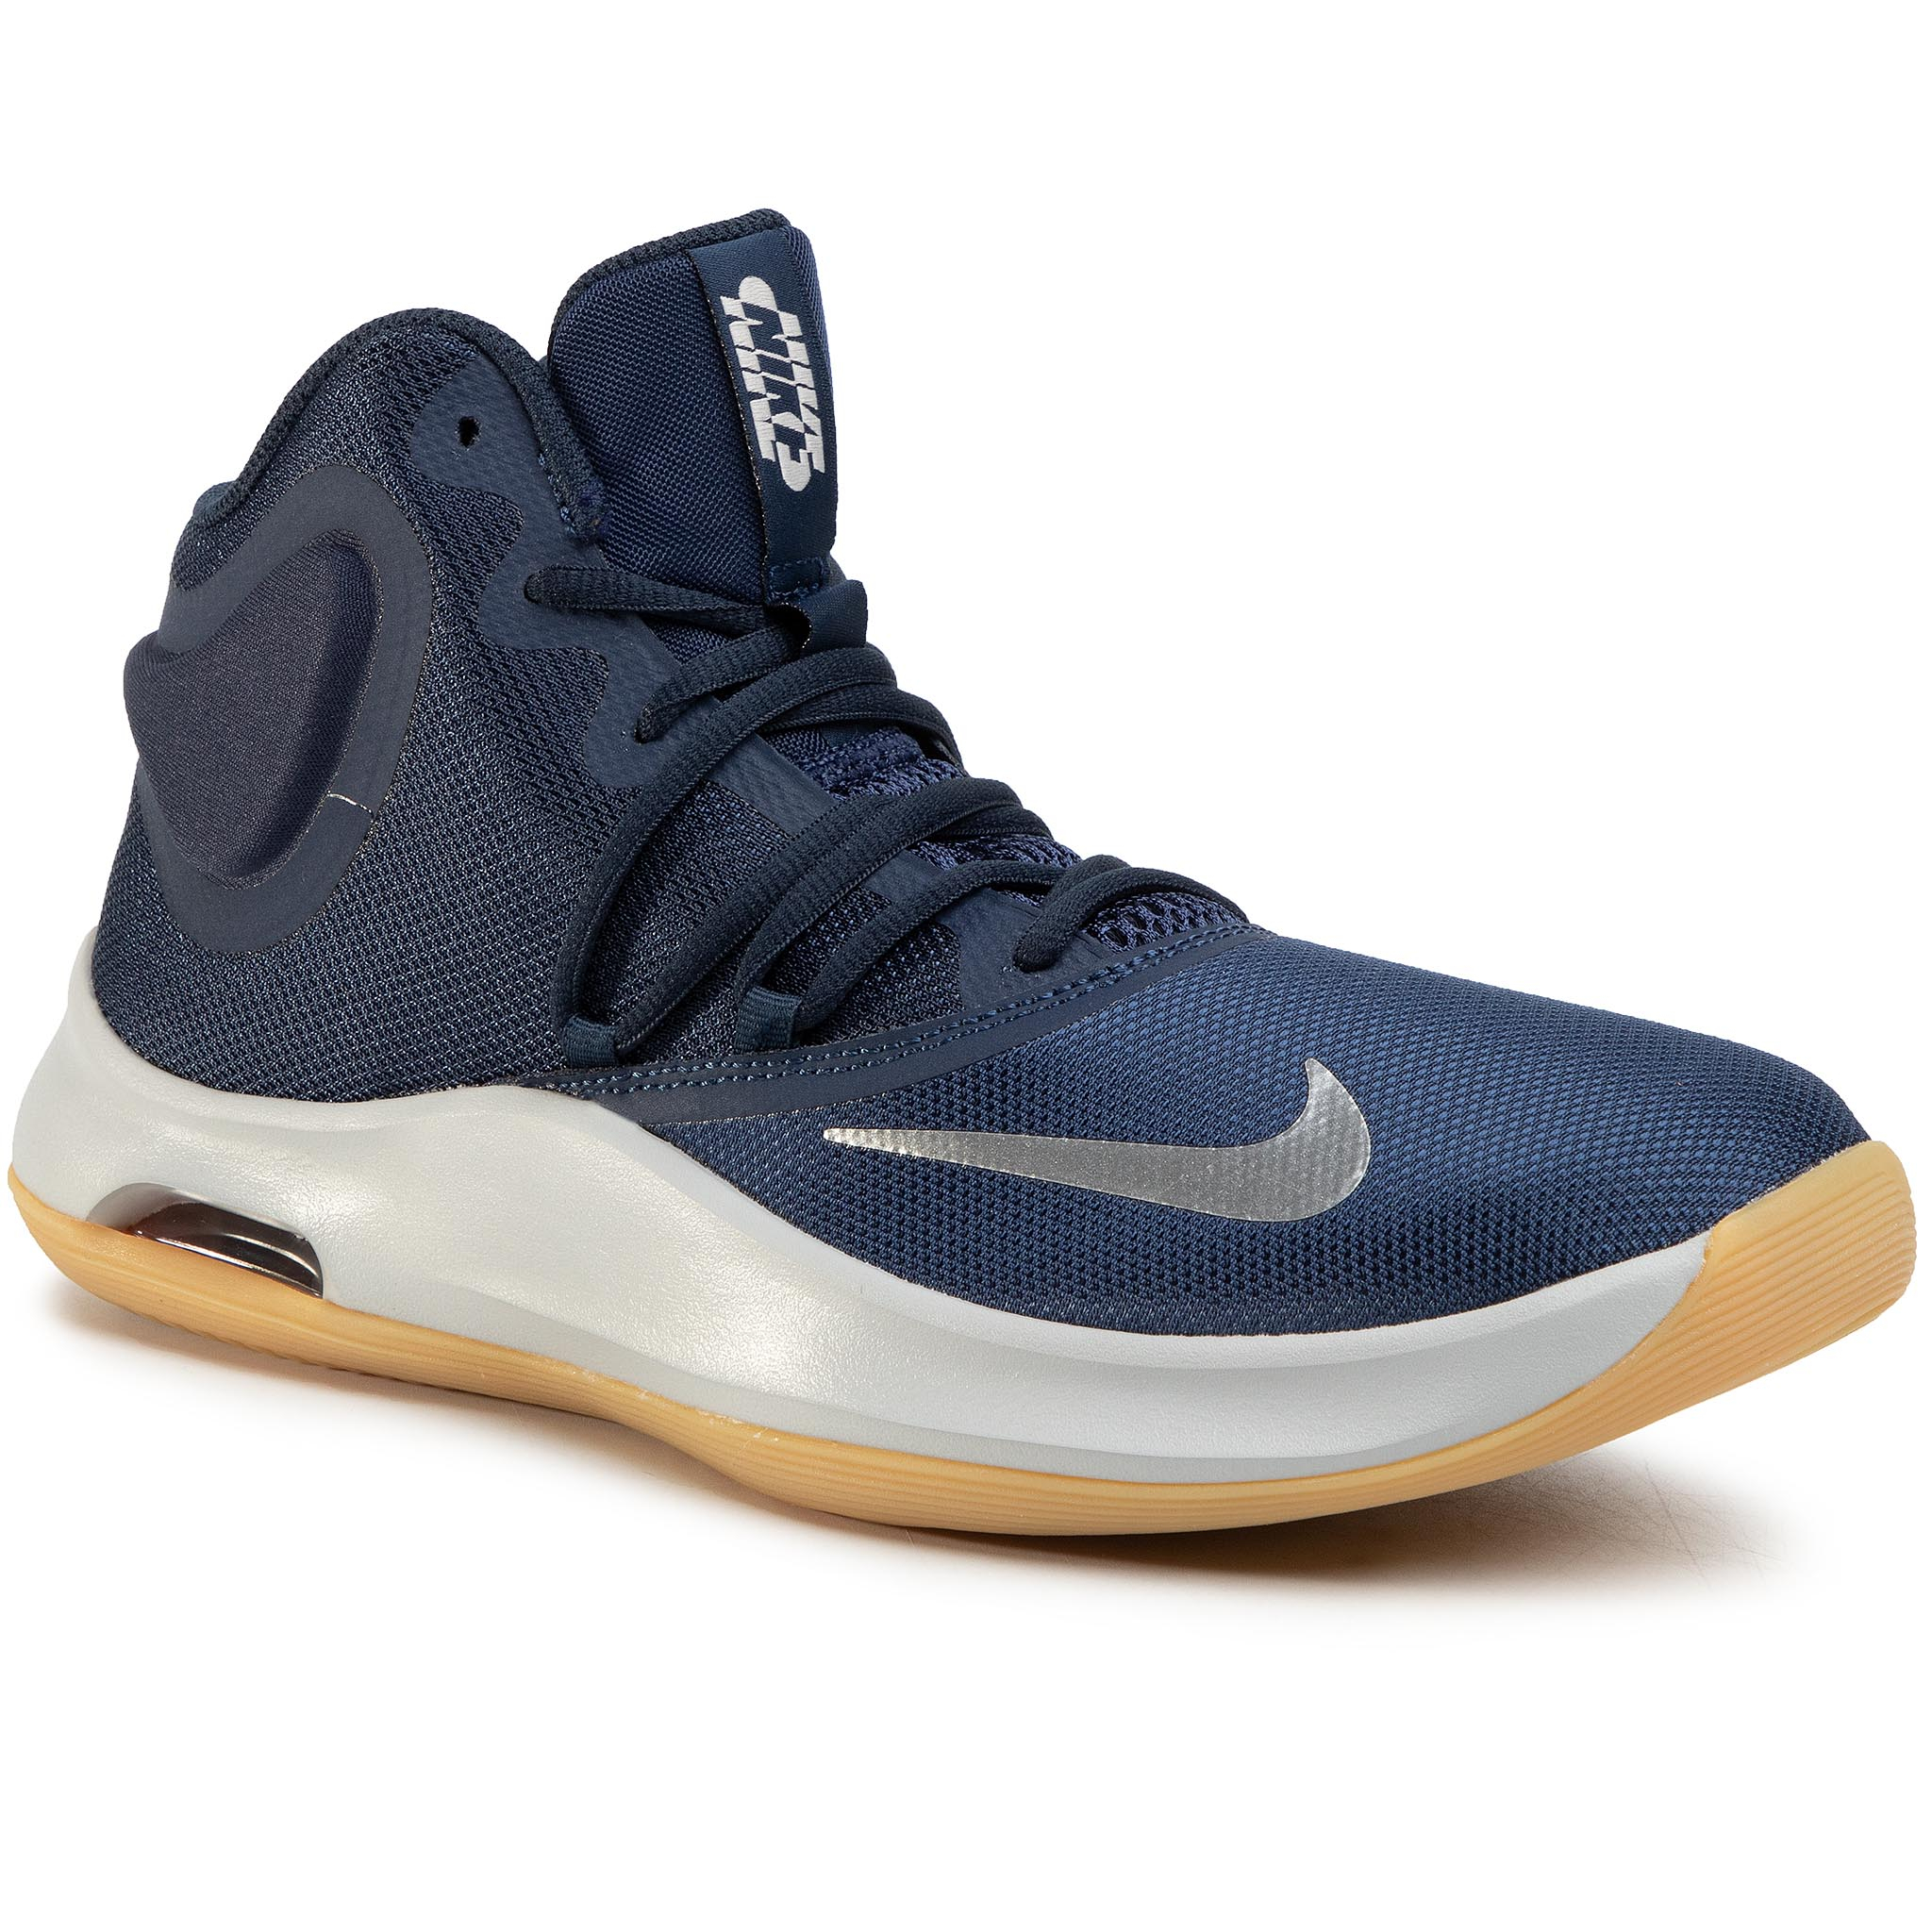 Pantofi Nike - Air Versitile Iv At1199 400 Midnight Navy/Metallic Silver imagine